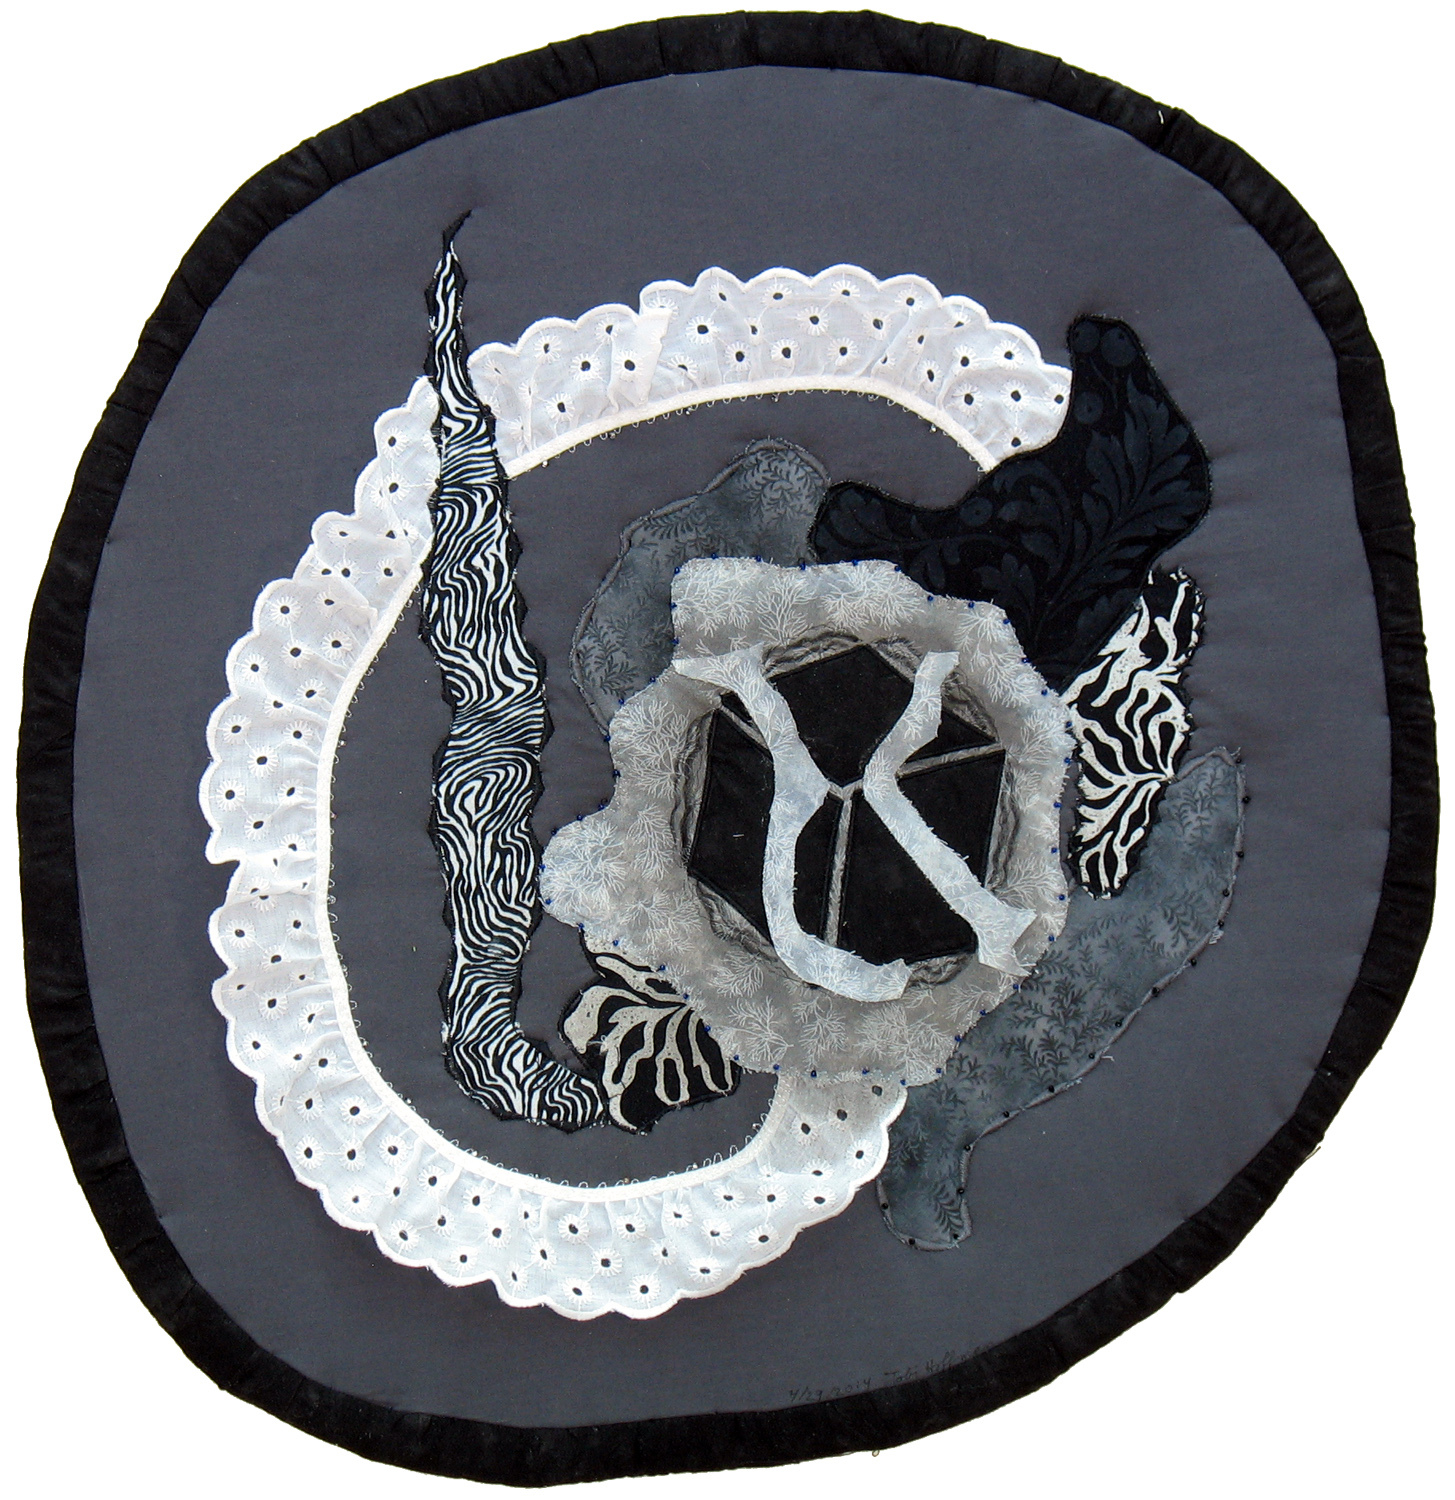 Grayscale: Absract Quilted Art Wall Hanging